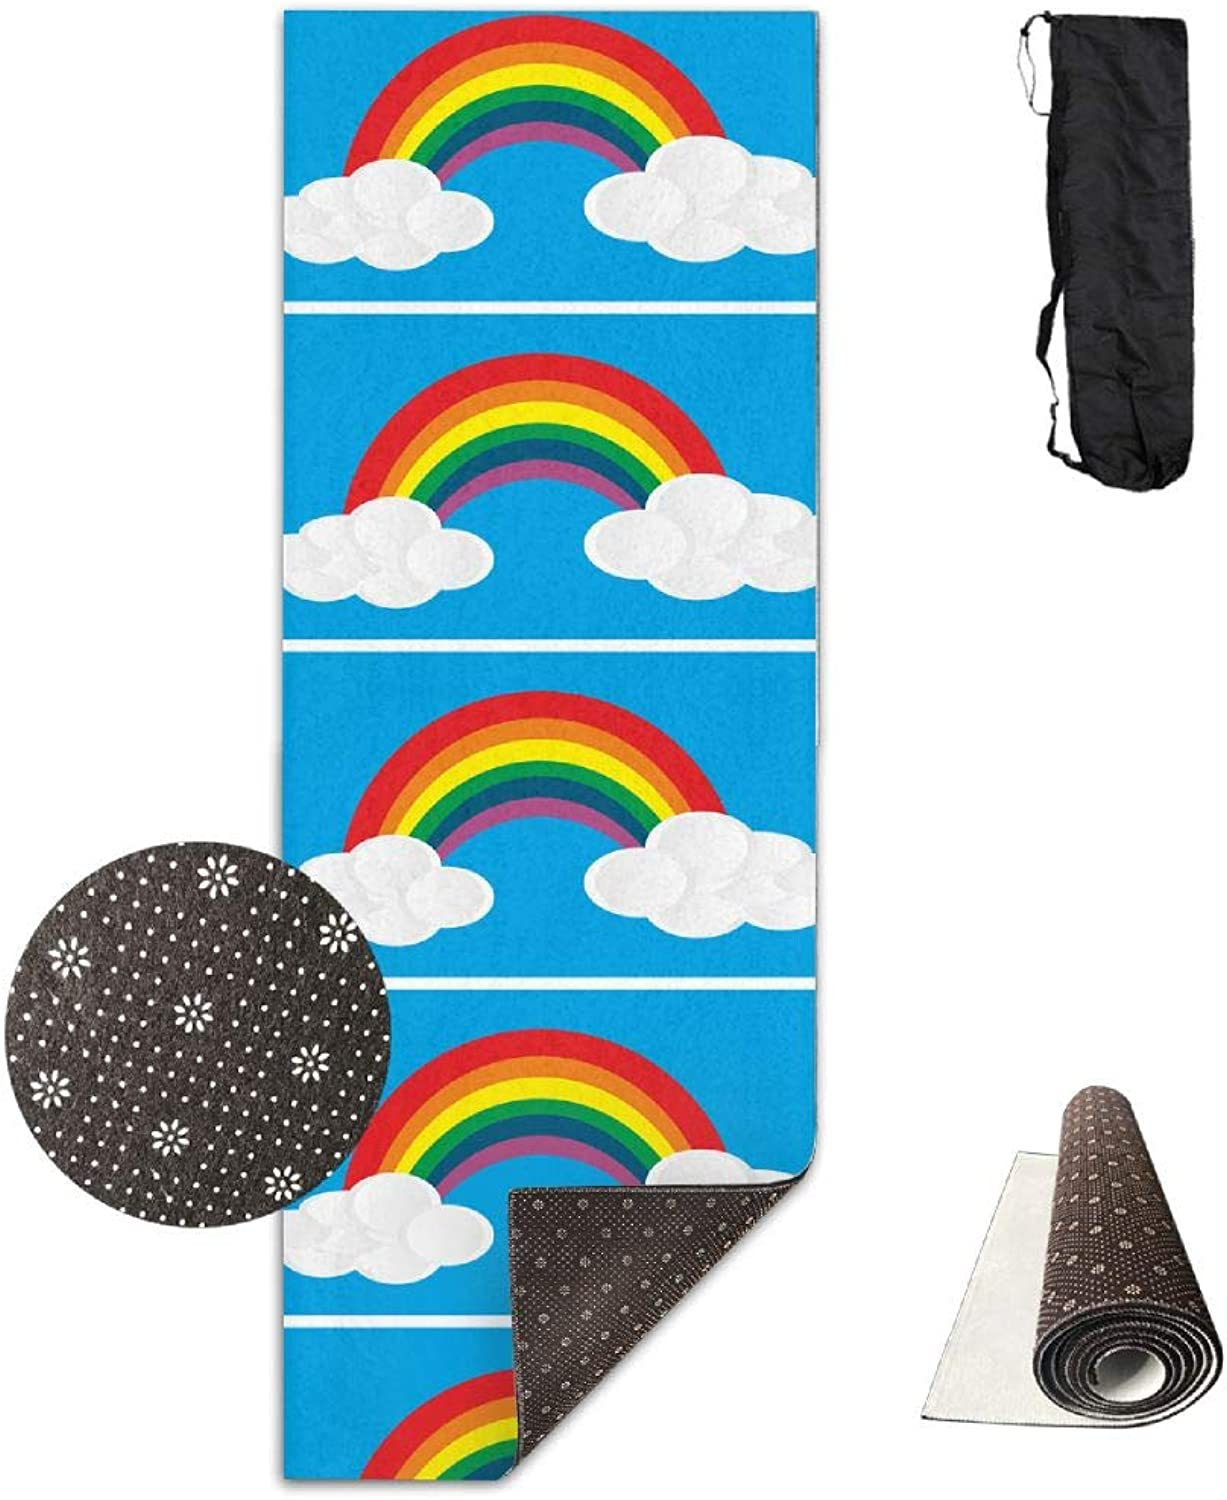 Yoga Mat Non Slip 24  X 71  Exercise Mats Rainbow Clouds Premium Fitness Pilates Carrying Strap